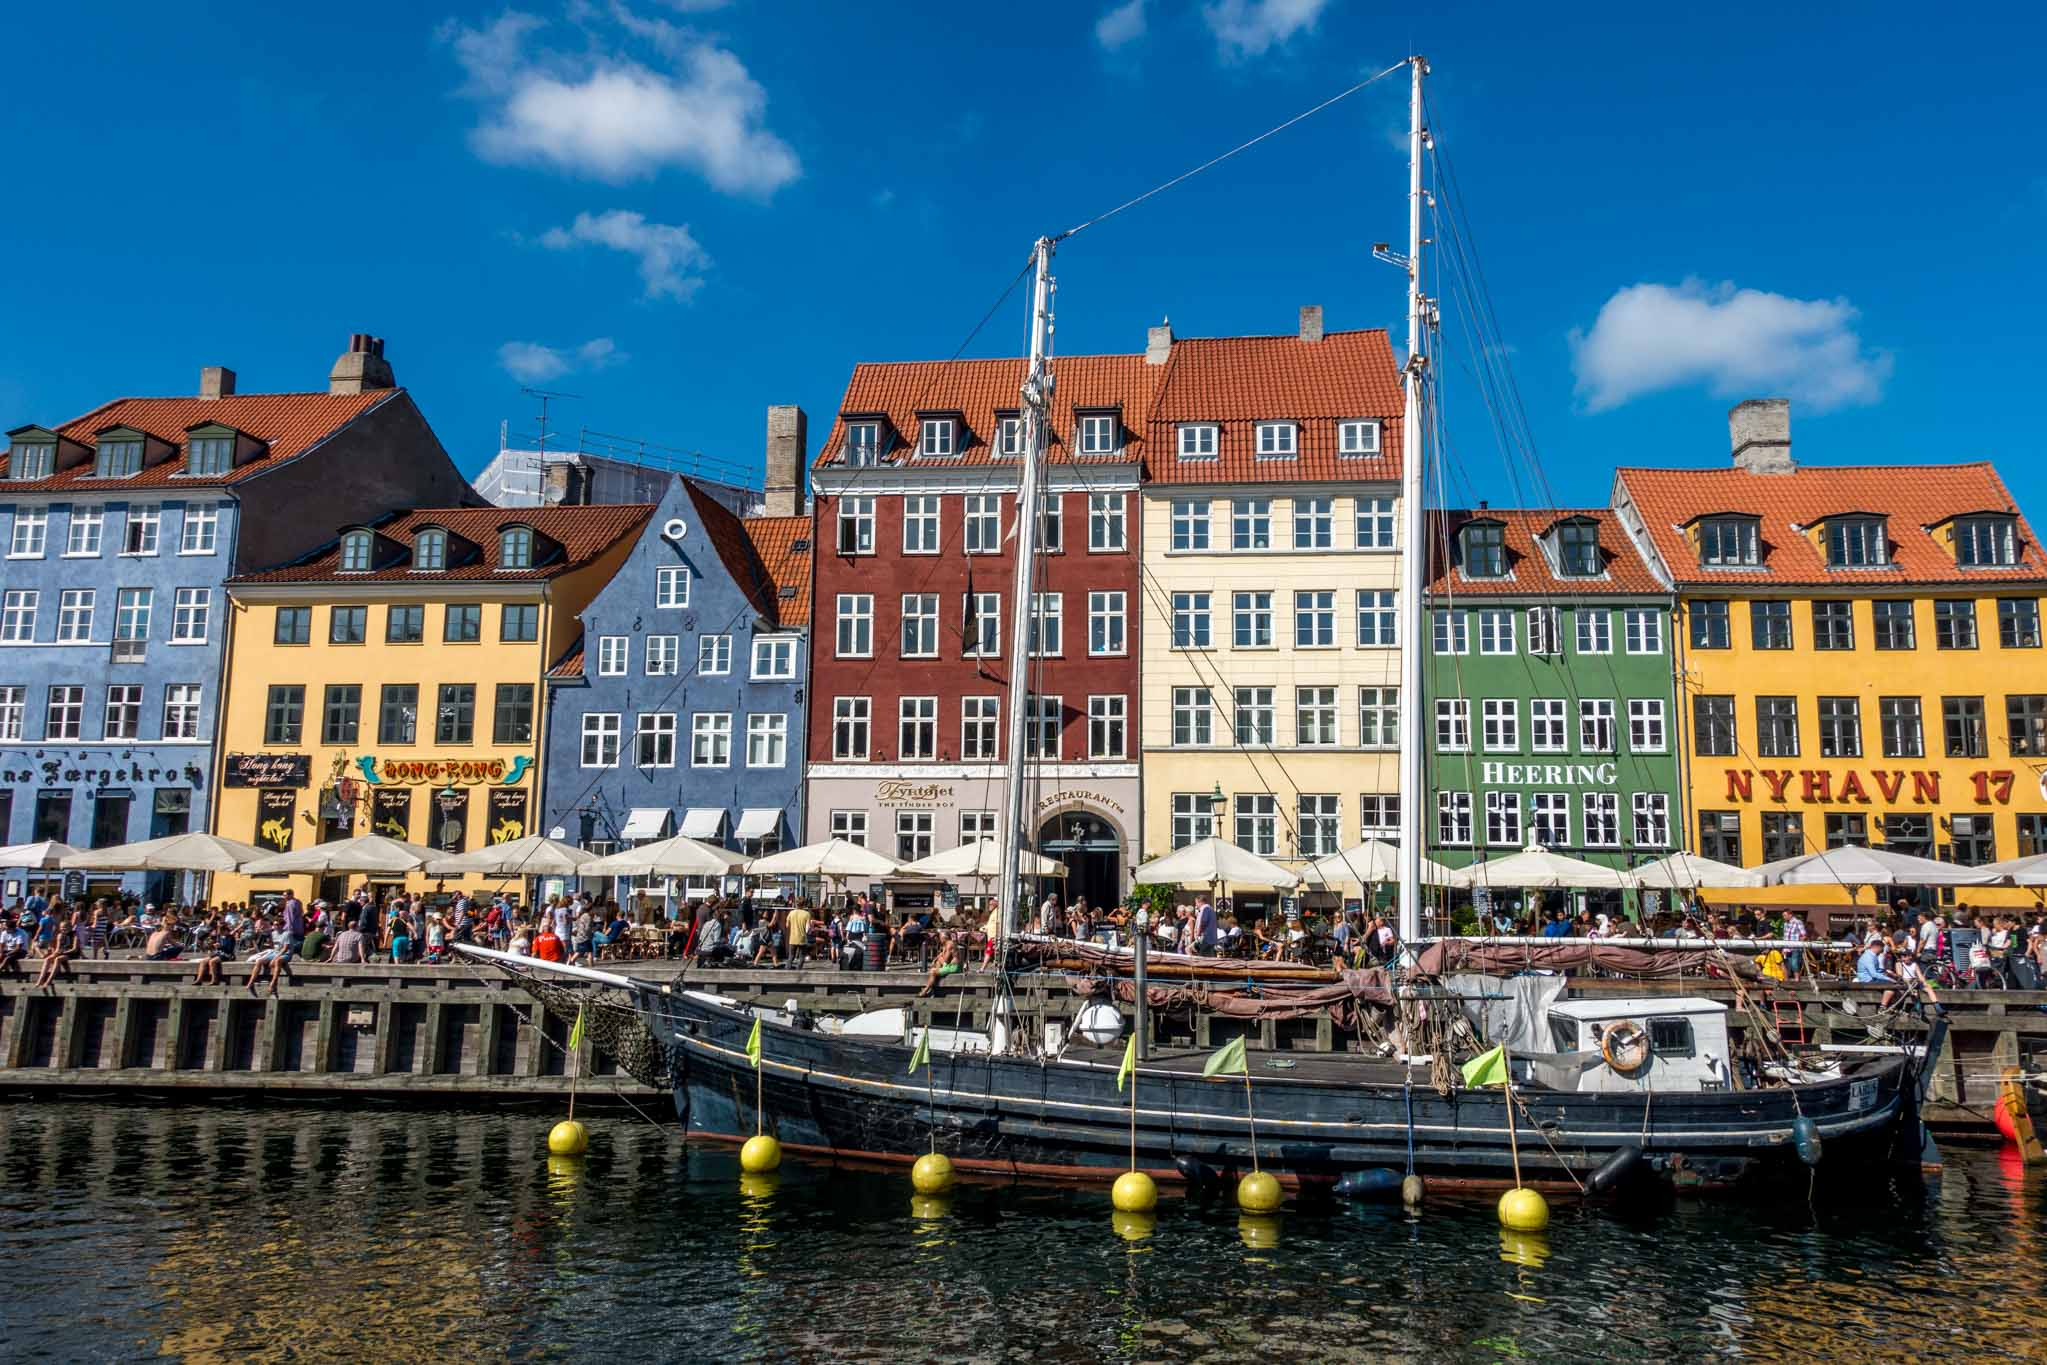 Nyhavn is the perfect place in Copenhagen to enjoy a sunny day